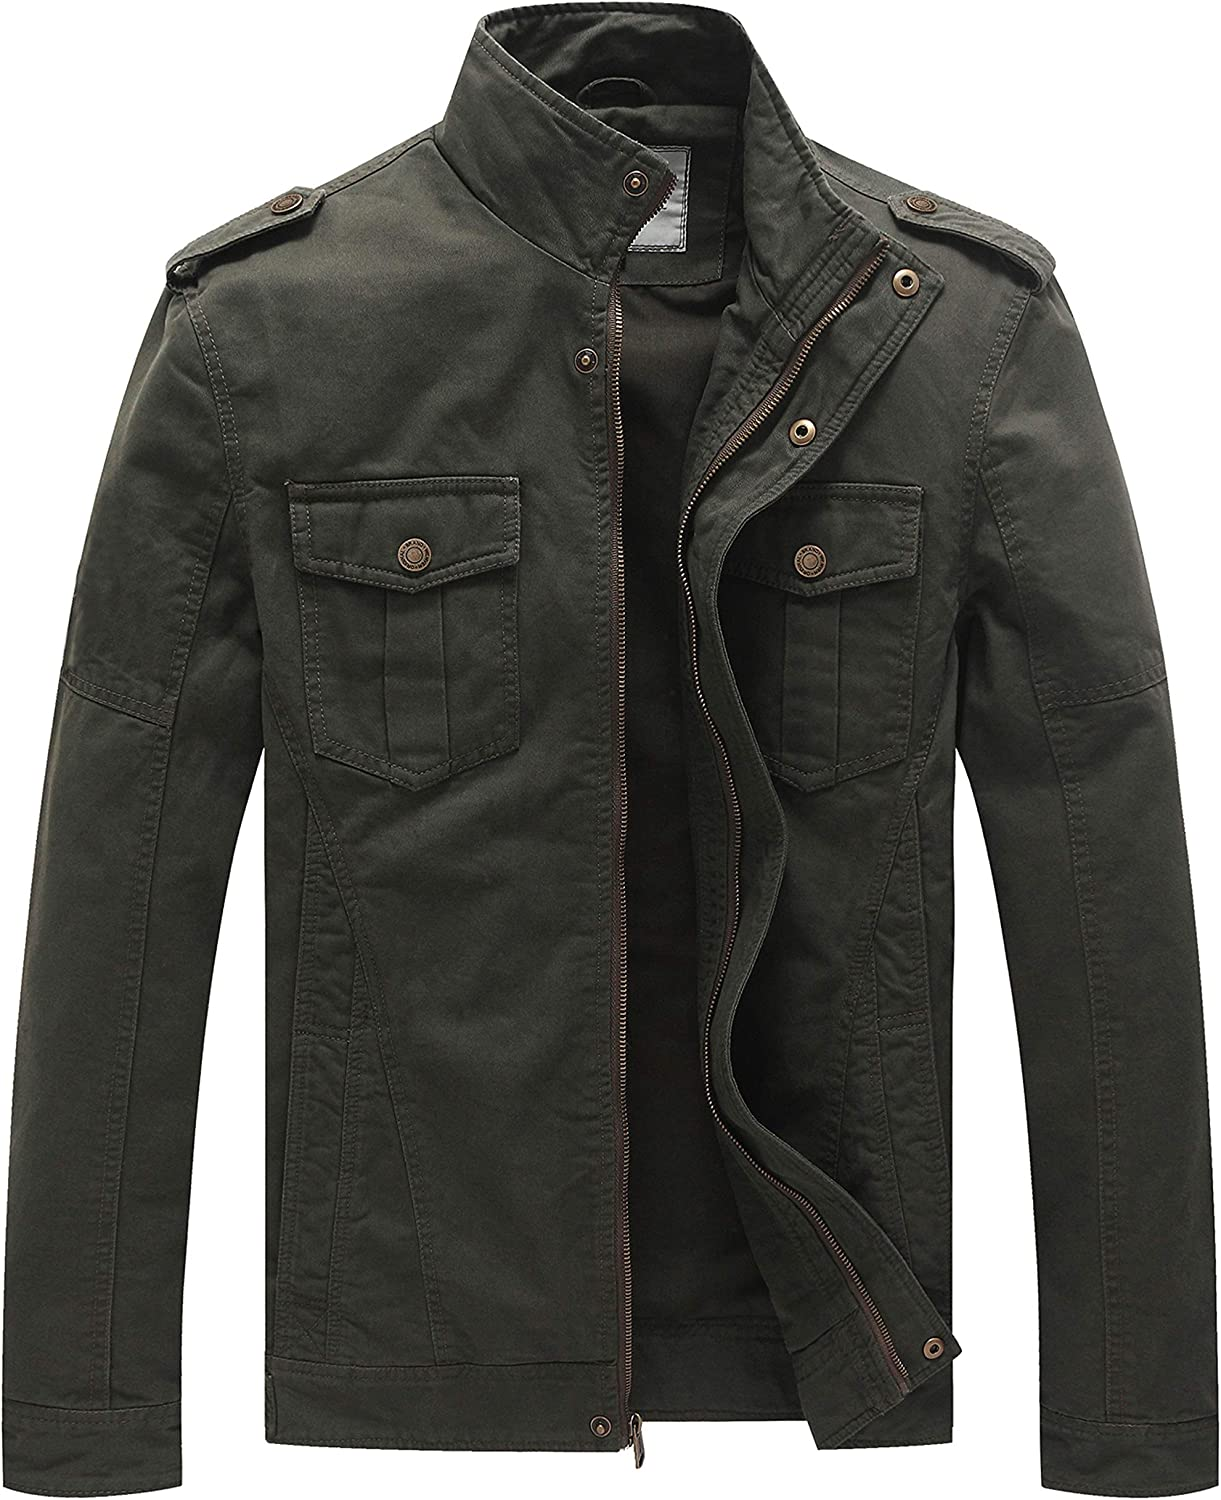 WenVen Men's Casual Washed Cotton Military Jacket